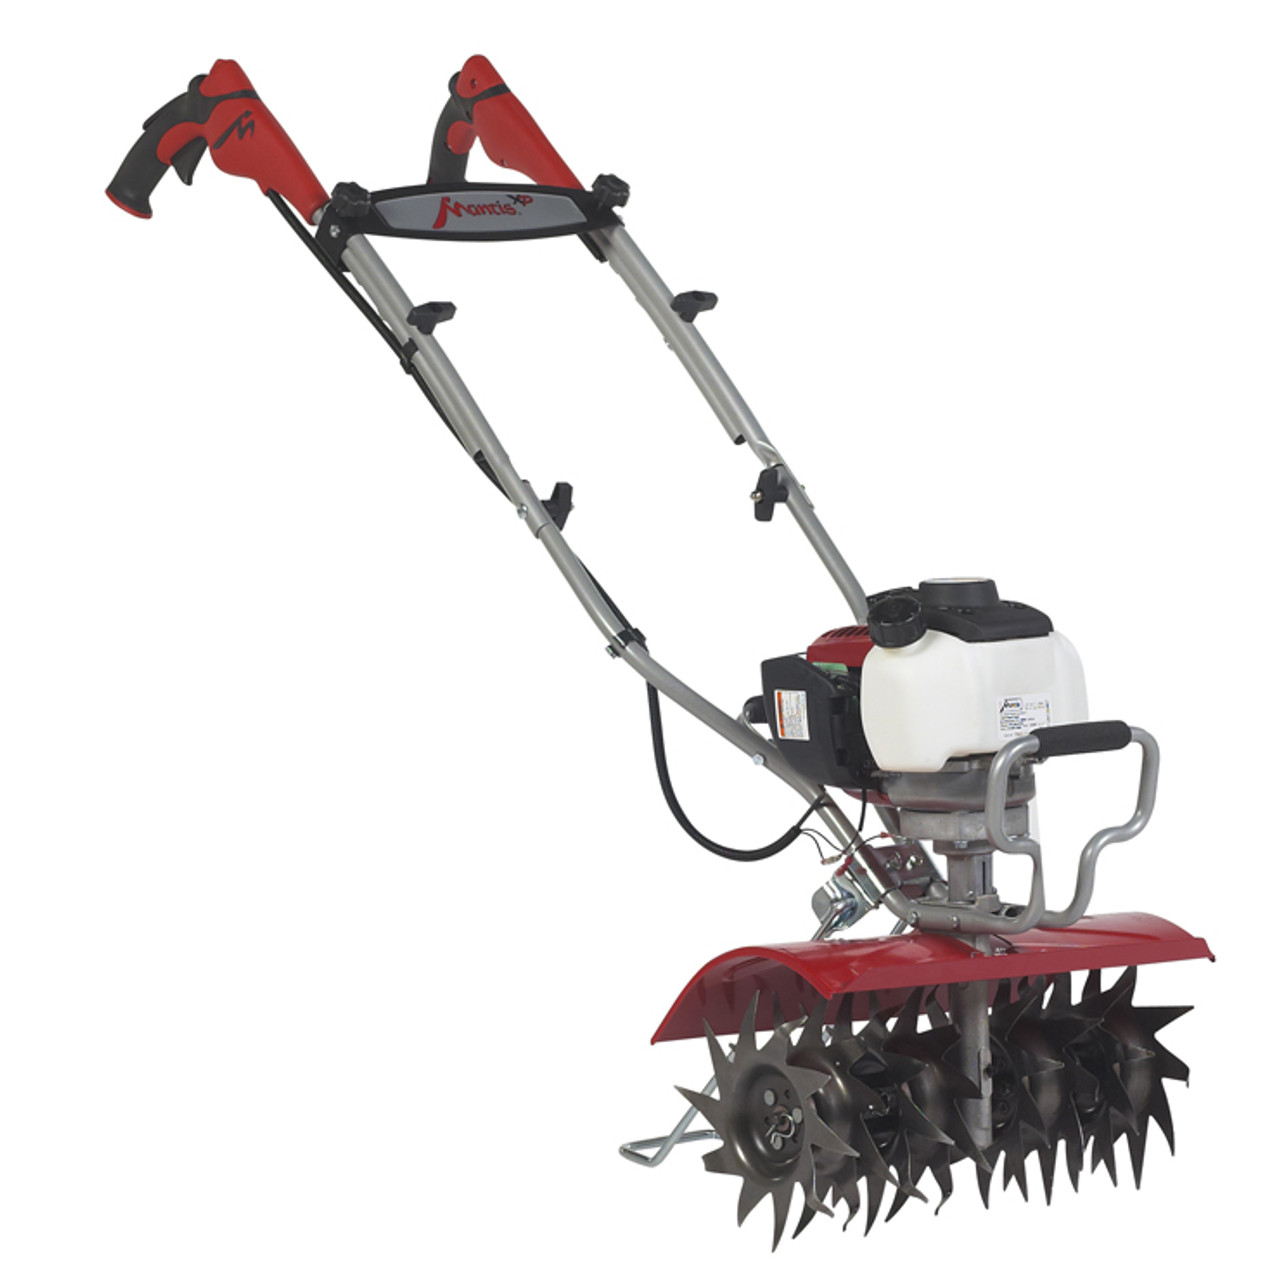 "Mantis 7566-12-02 Deluxe 4-Cycle 35cc 16"" Mantis XP Tiller Image"